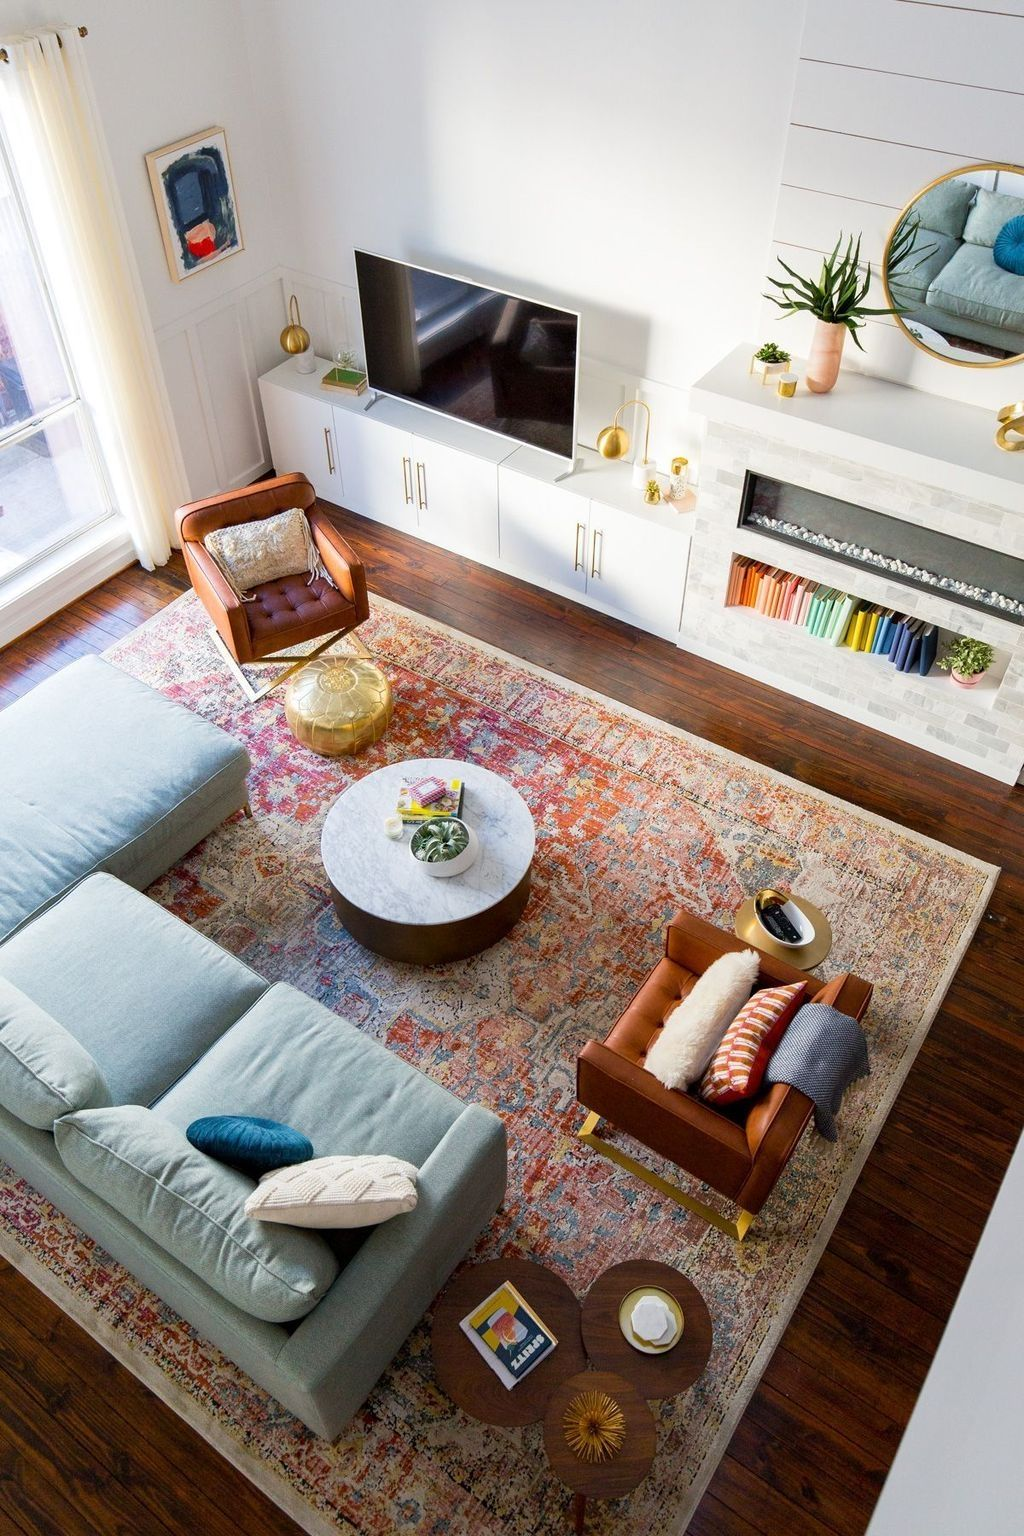 50 Beautiful Small Space Living Room Decoration Ideas images